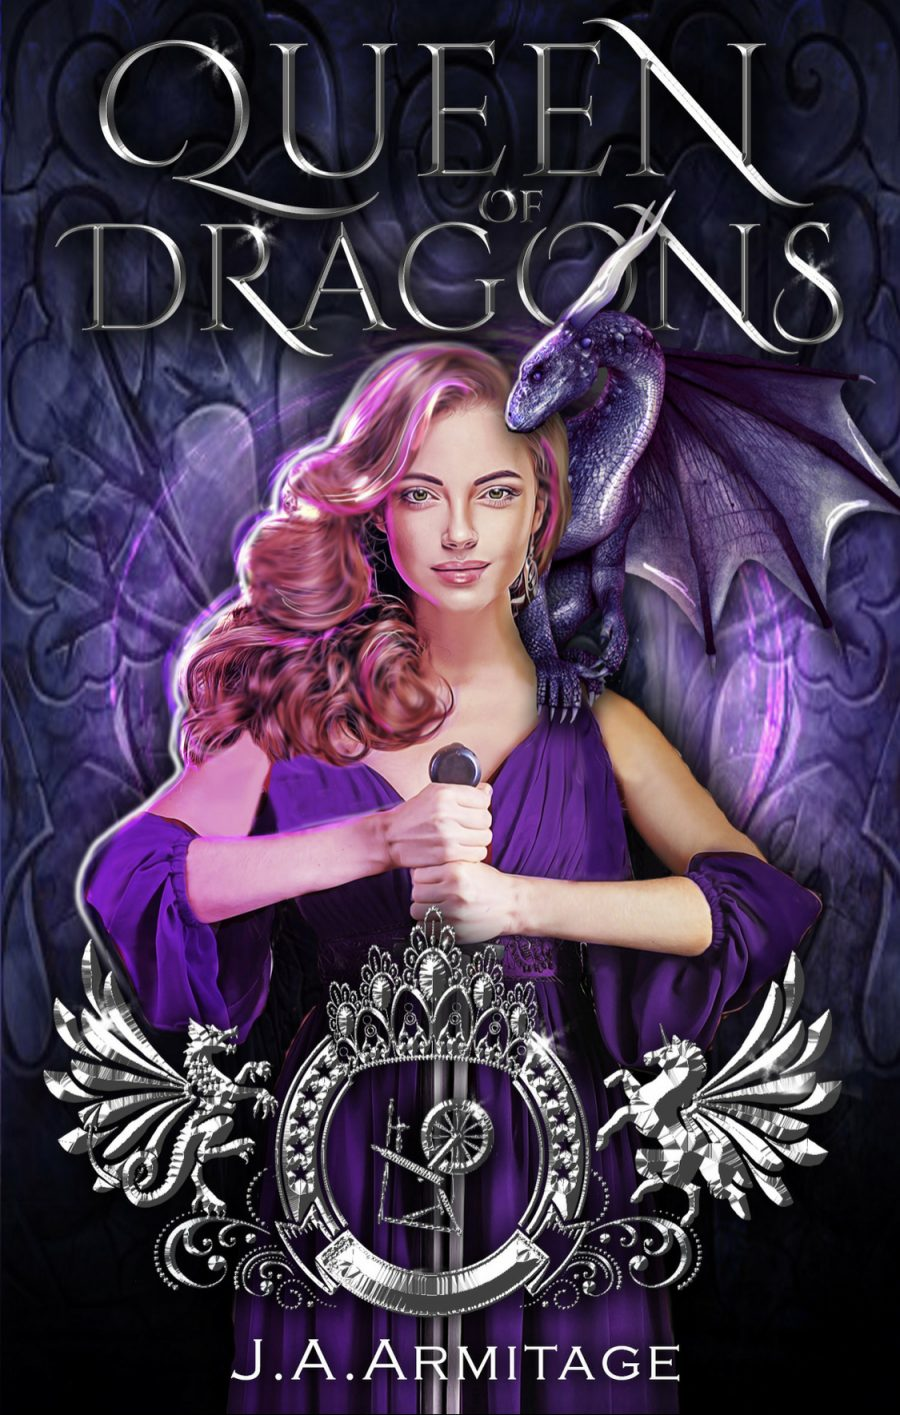 Queen of Dragons (Kingdom of Fairytales - Book 1) by J.A. Armitage - A Book Review #BookReview #FairyTale #4Stars #Fantasy #YA #SleepingBeauty #KindleUnlimited #KU